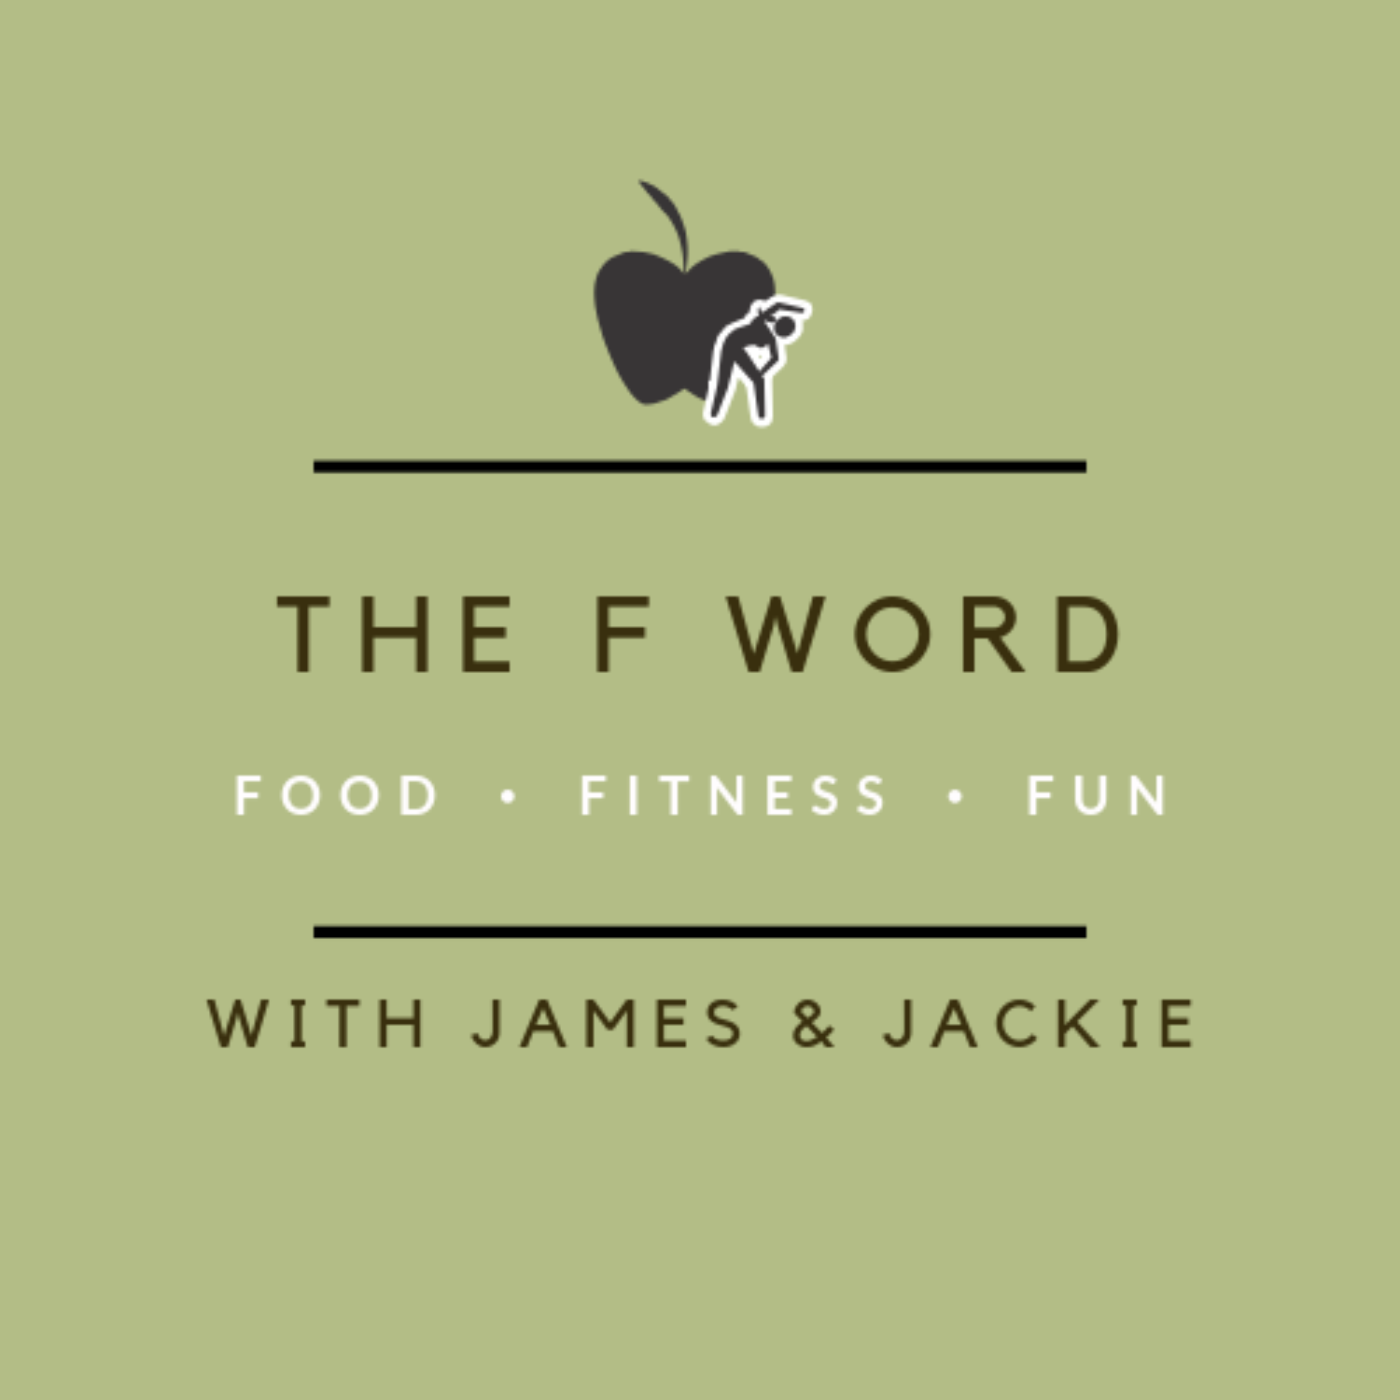 The F Word - James and Jackie-20-11-2019